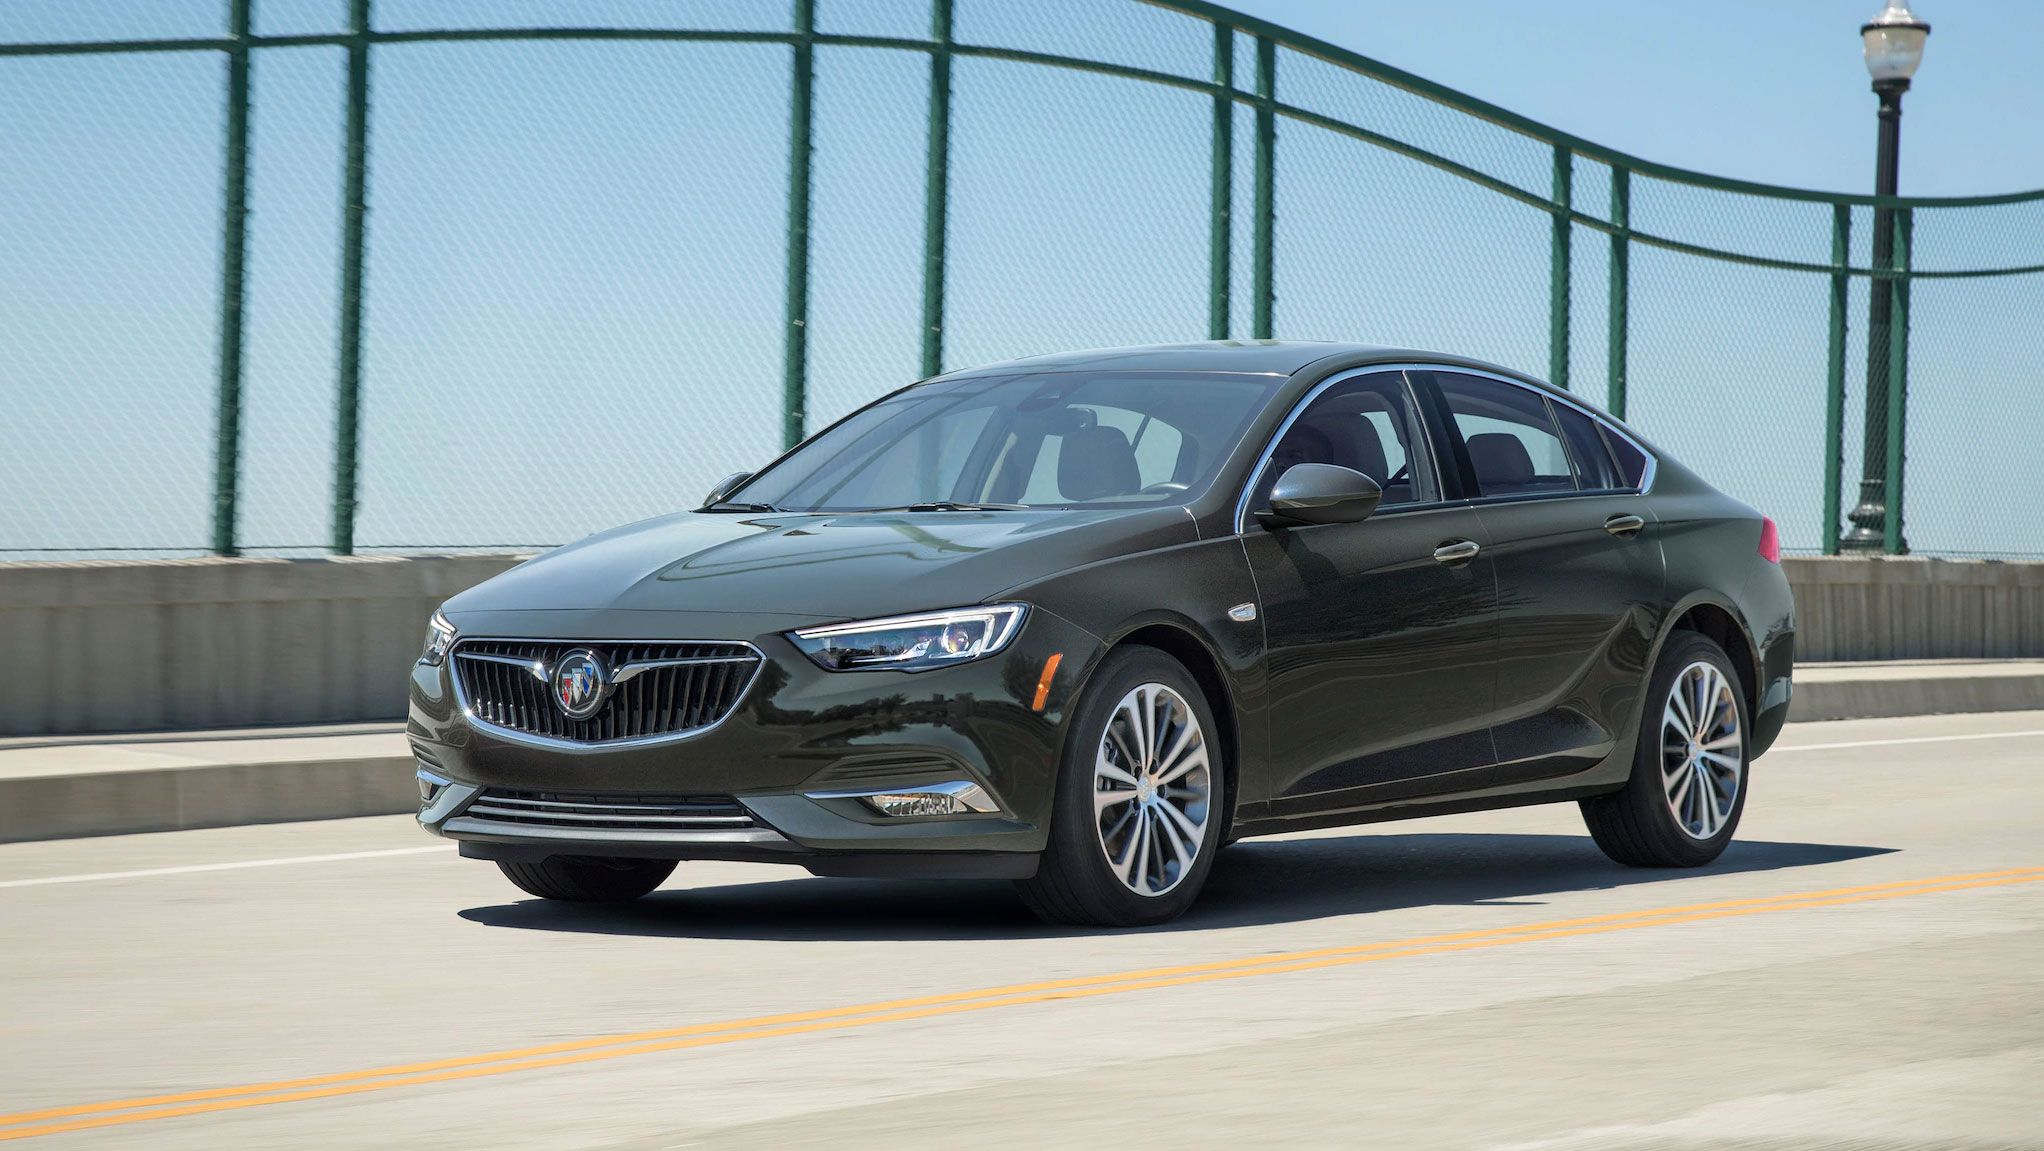 2020 Buick Regal Gs Coupe Price